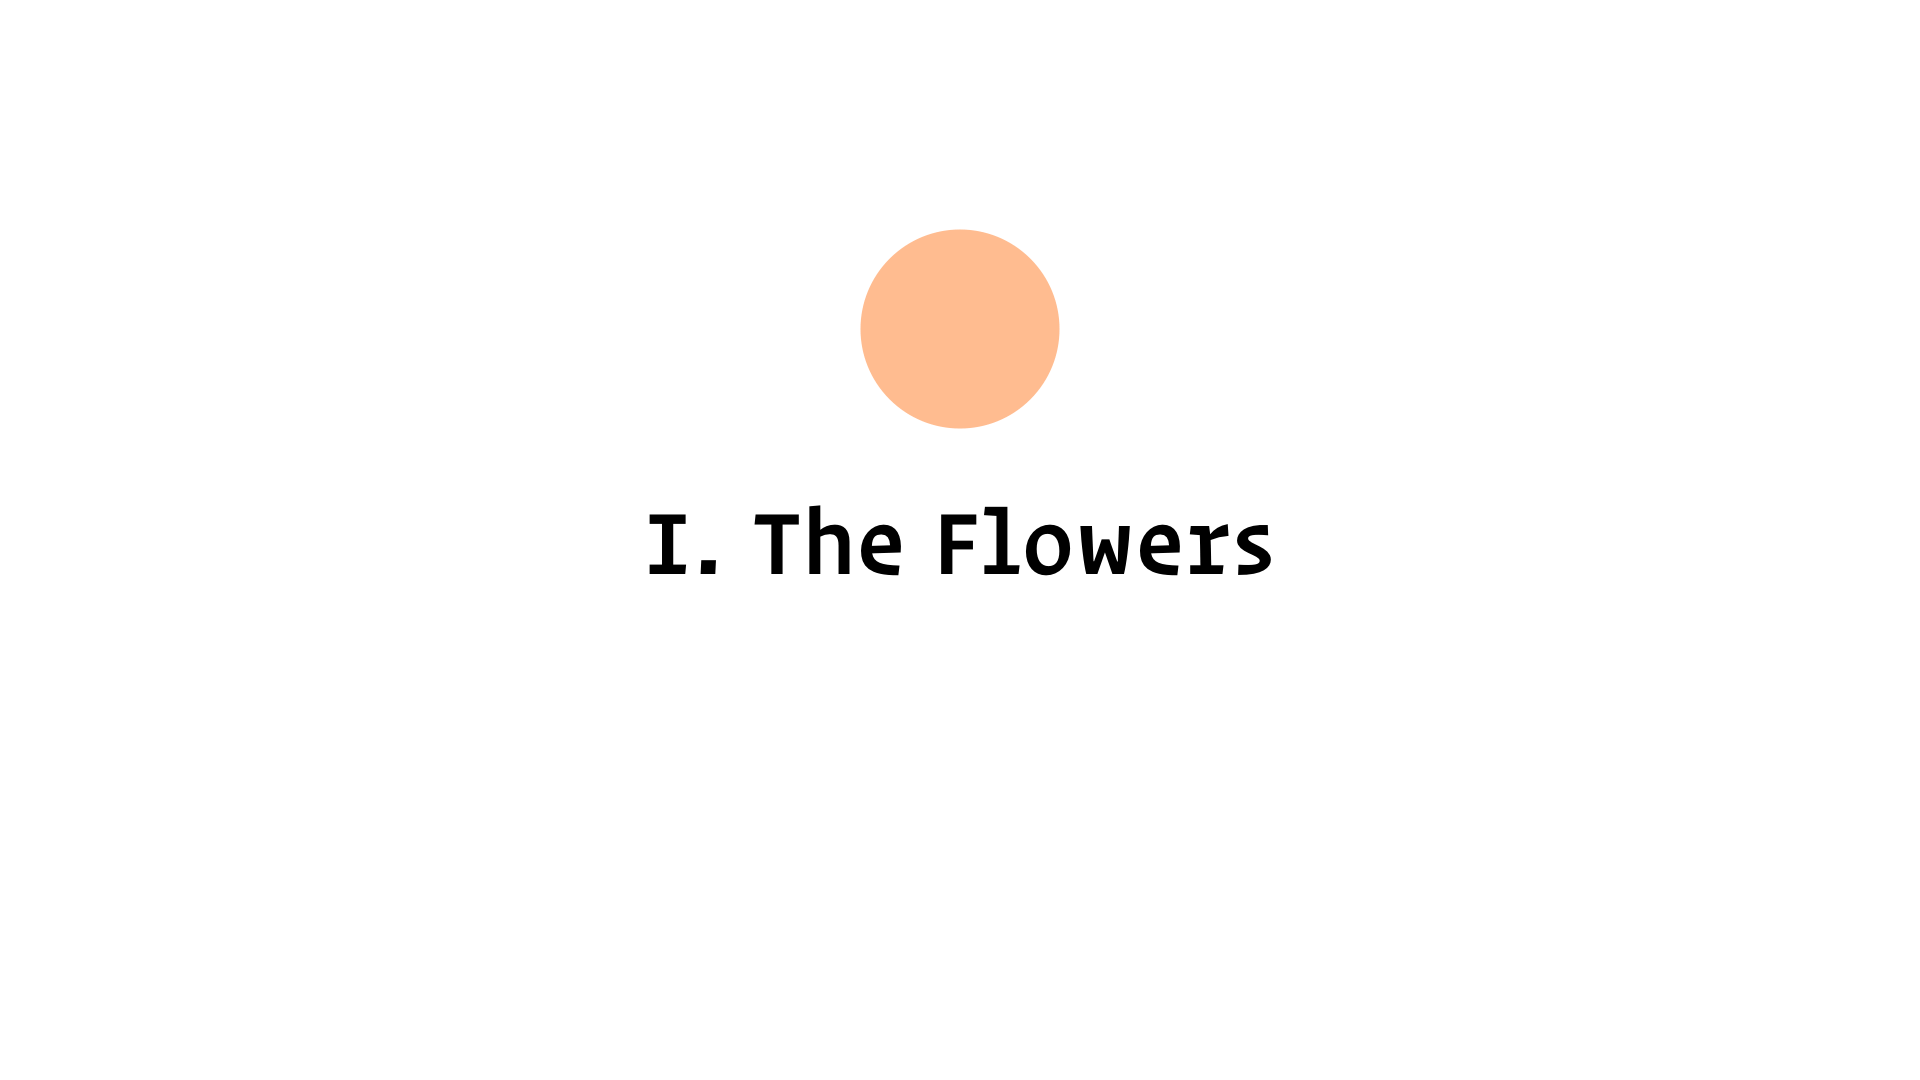 I. The Flowers